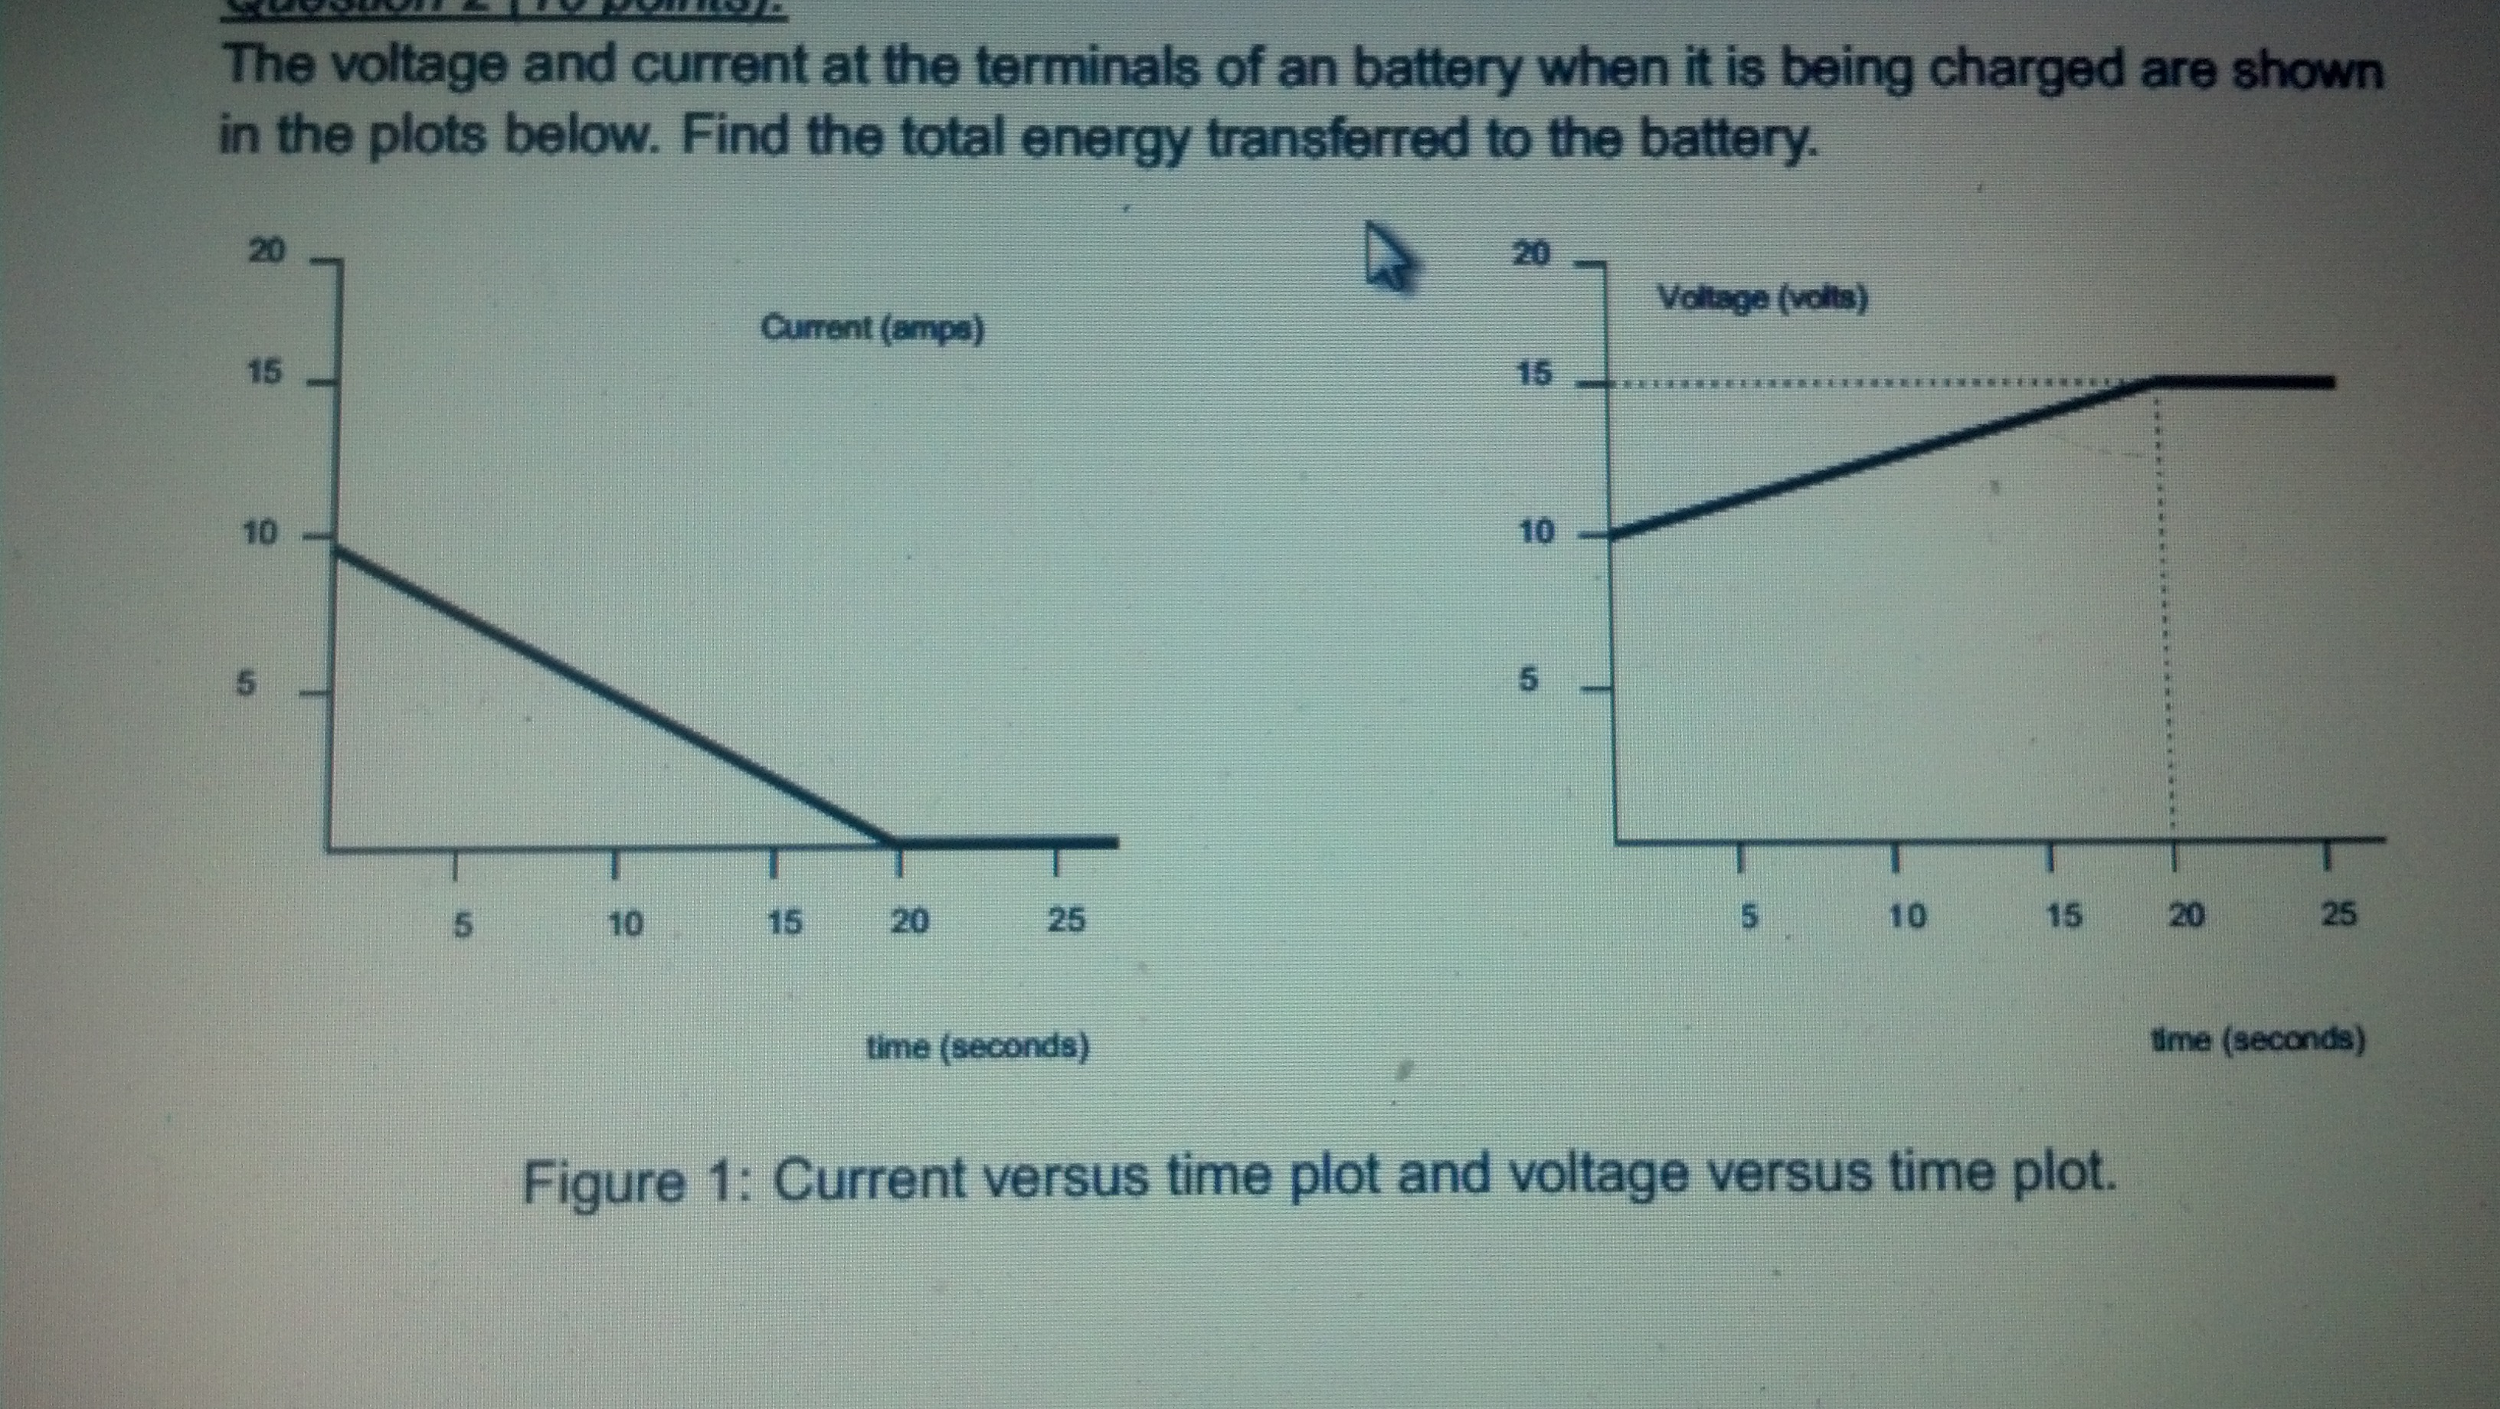 The voltage and current at the terminate of an bat